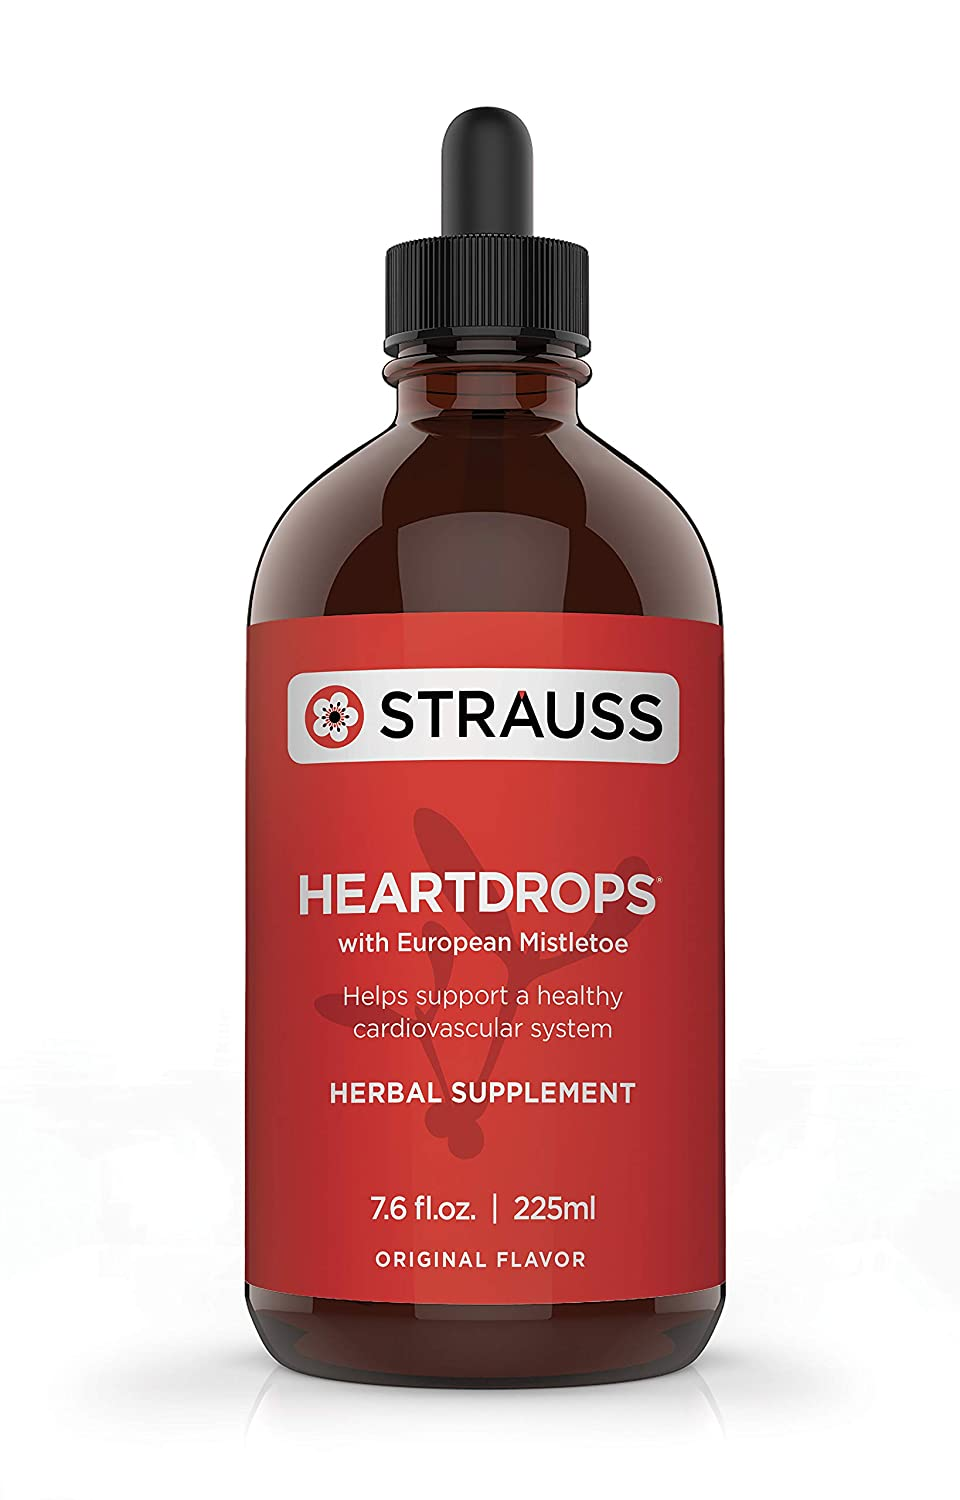 Strauss Heartdrops Aged Garlic Extract, Herbal Supplement for Heart Health-Heartdrops Maintain a Healthy Cardiovascular System High Quality, Natural Ingredients 7.6 fl oz Original Flavor